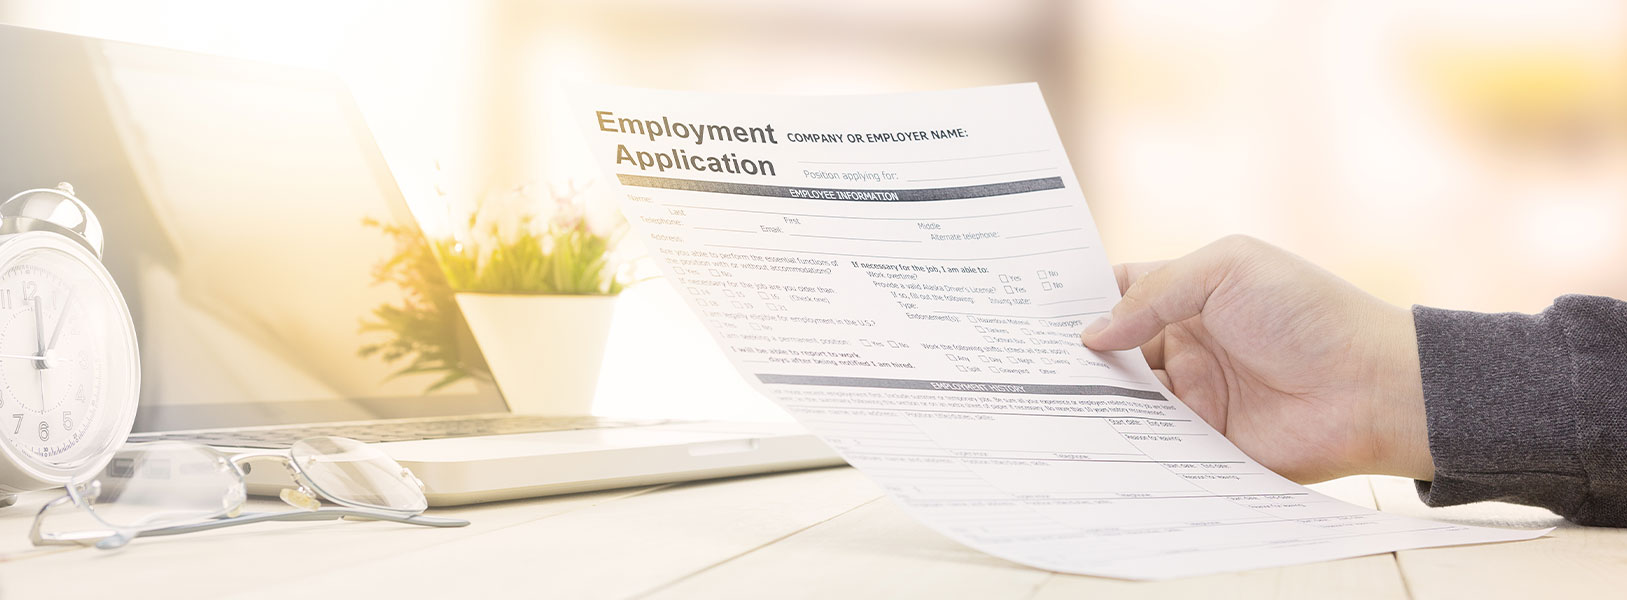 An image of a hand holding an employment application